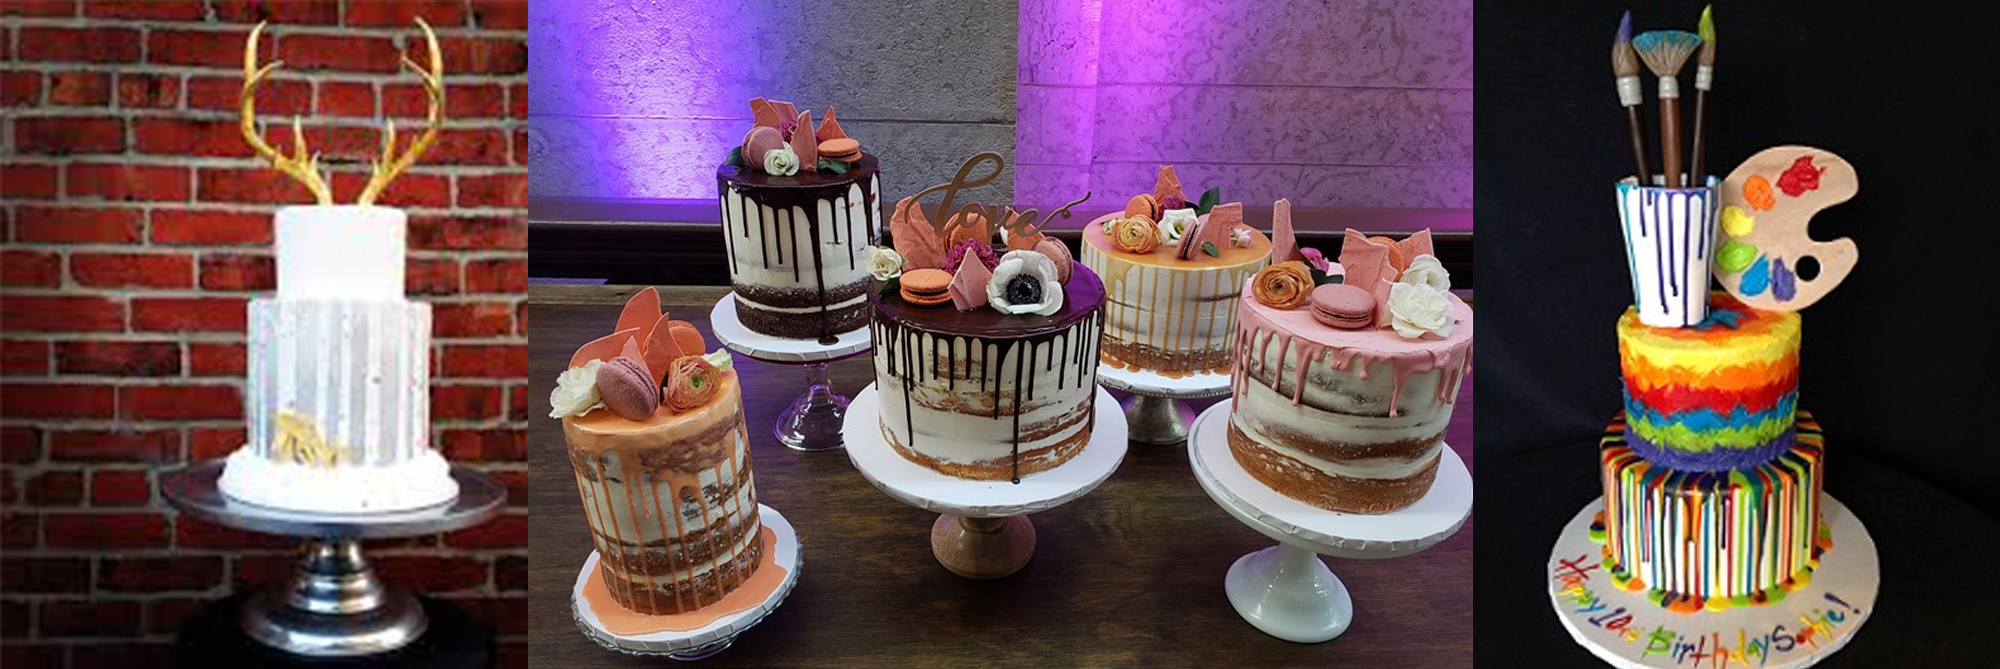 Cak with antlers sticking out, cakes for parties, artist cake with easel and palate